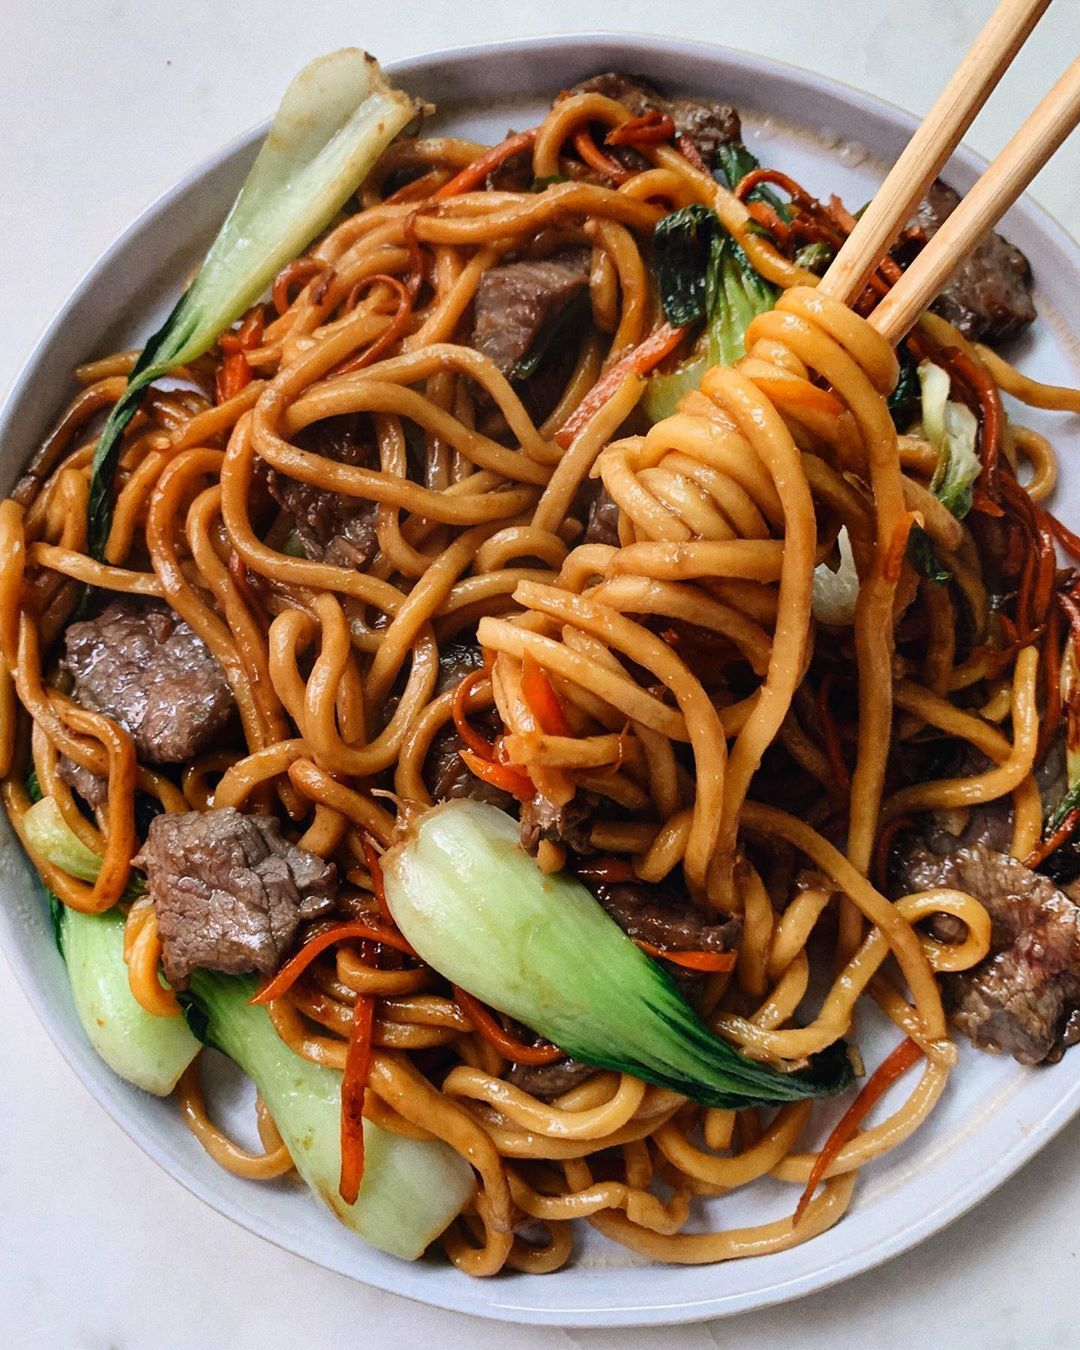 P E A C H O N O M I C S On Instagram Weekend Plans Chinese Beef Lo Mein Except These Are Homemade And Taste So Beef Lo Mein Recipe Food Lo Mein Recipes